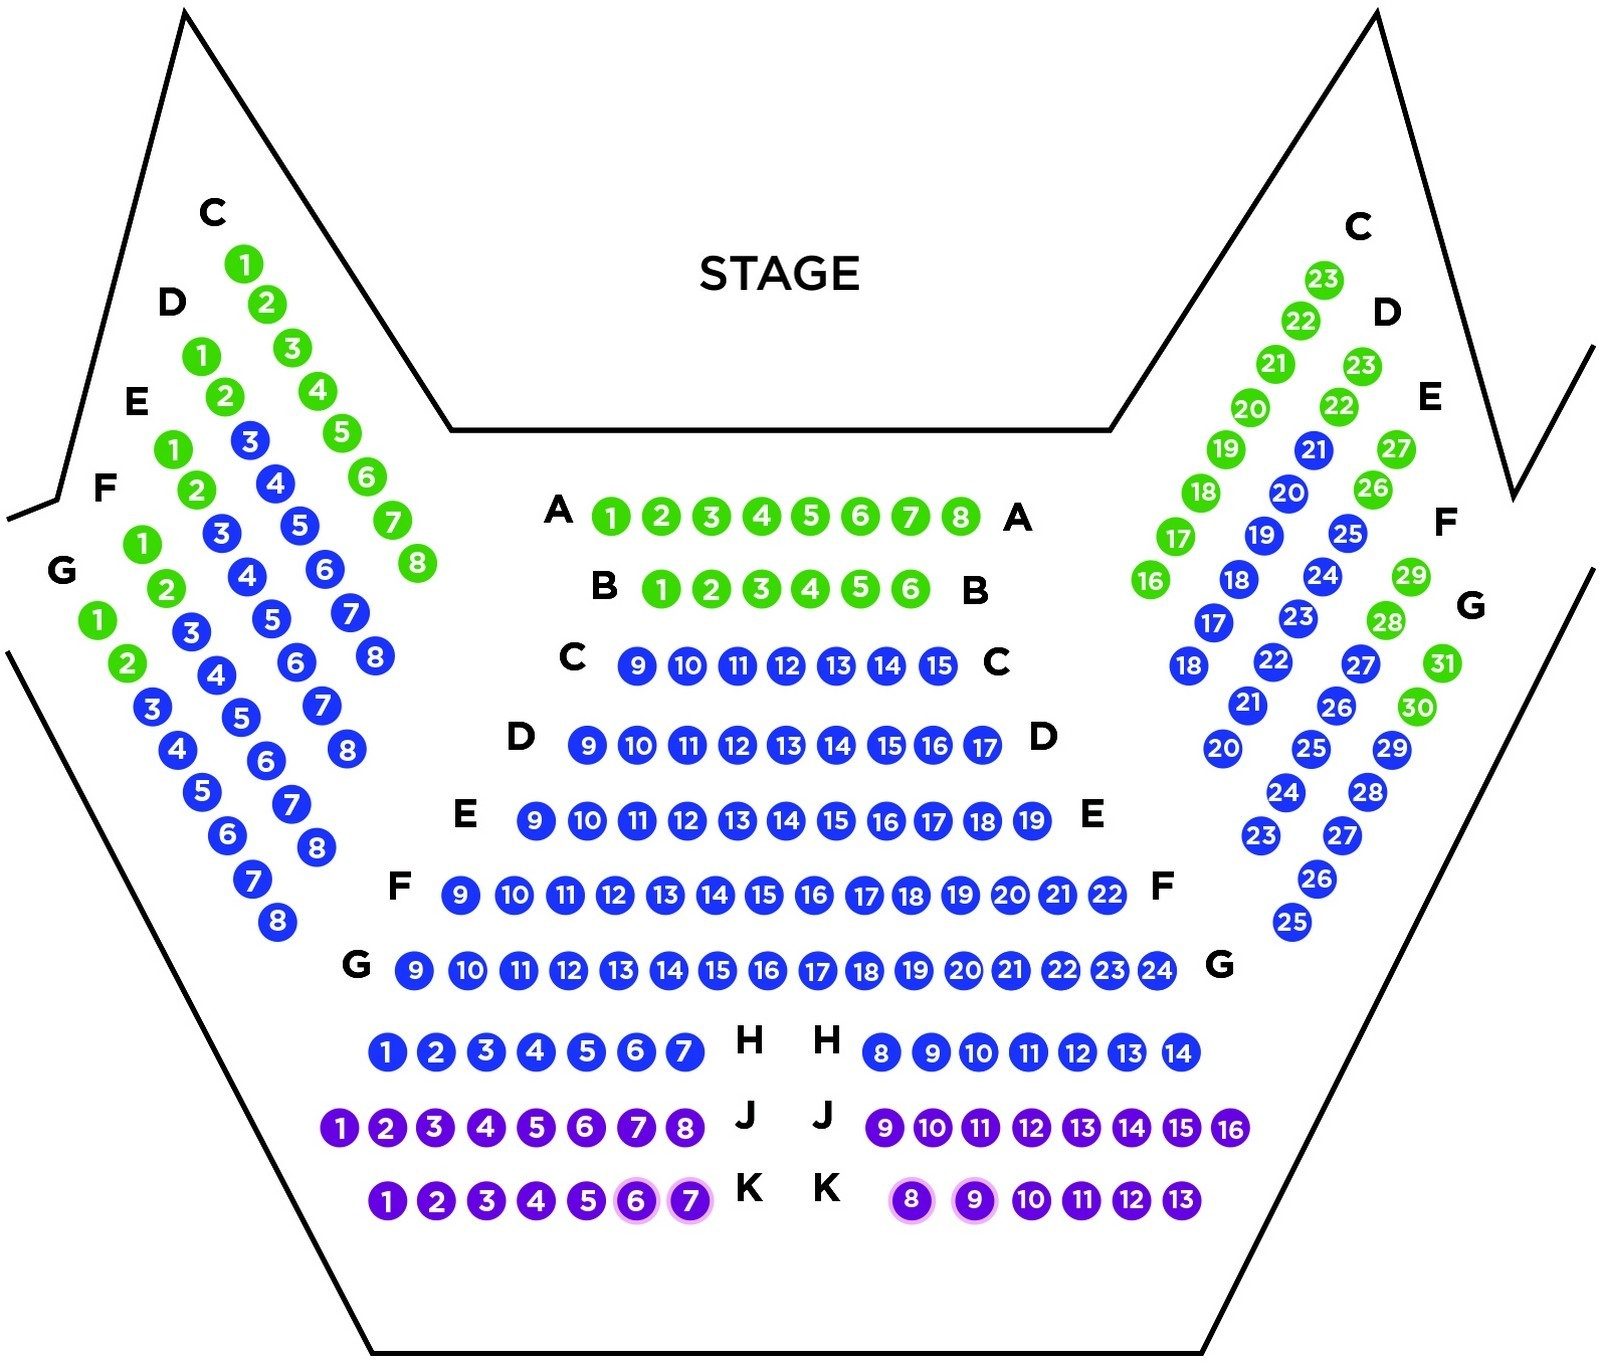 Scotiabank Stage Seat Map